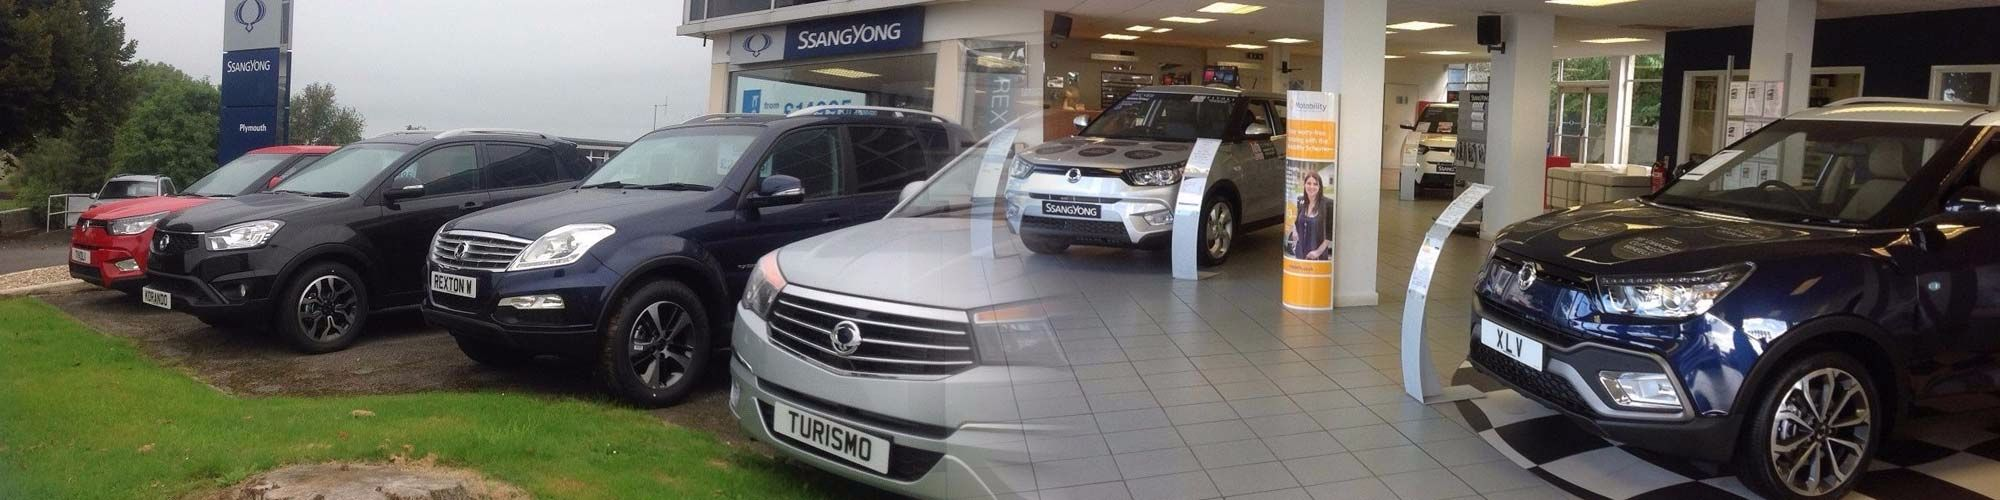 ABOUT PLYMOUTH SSANGYONG